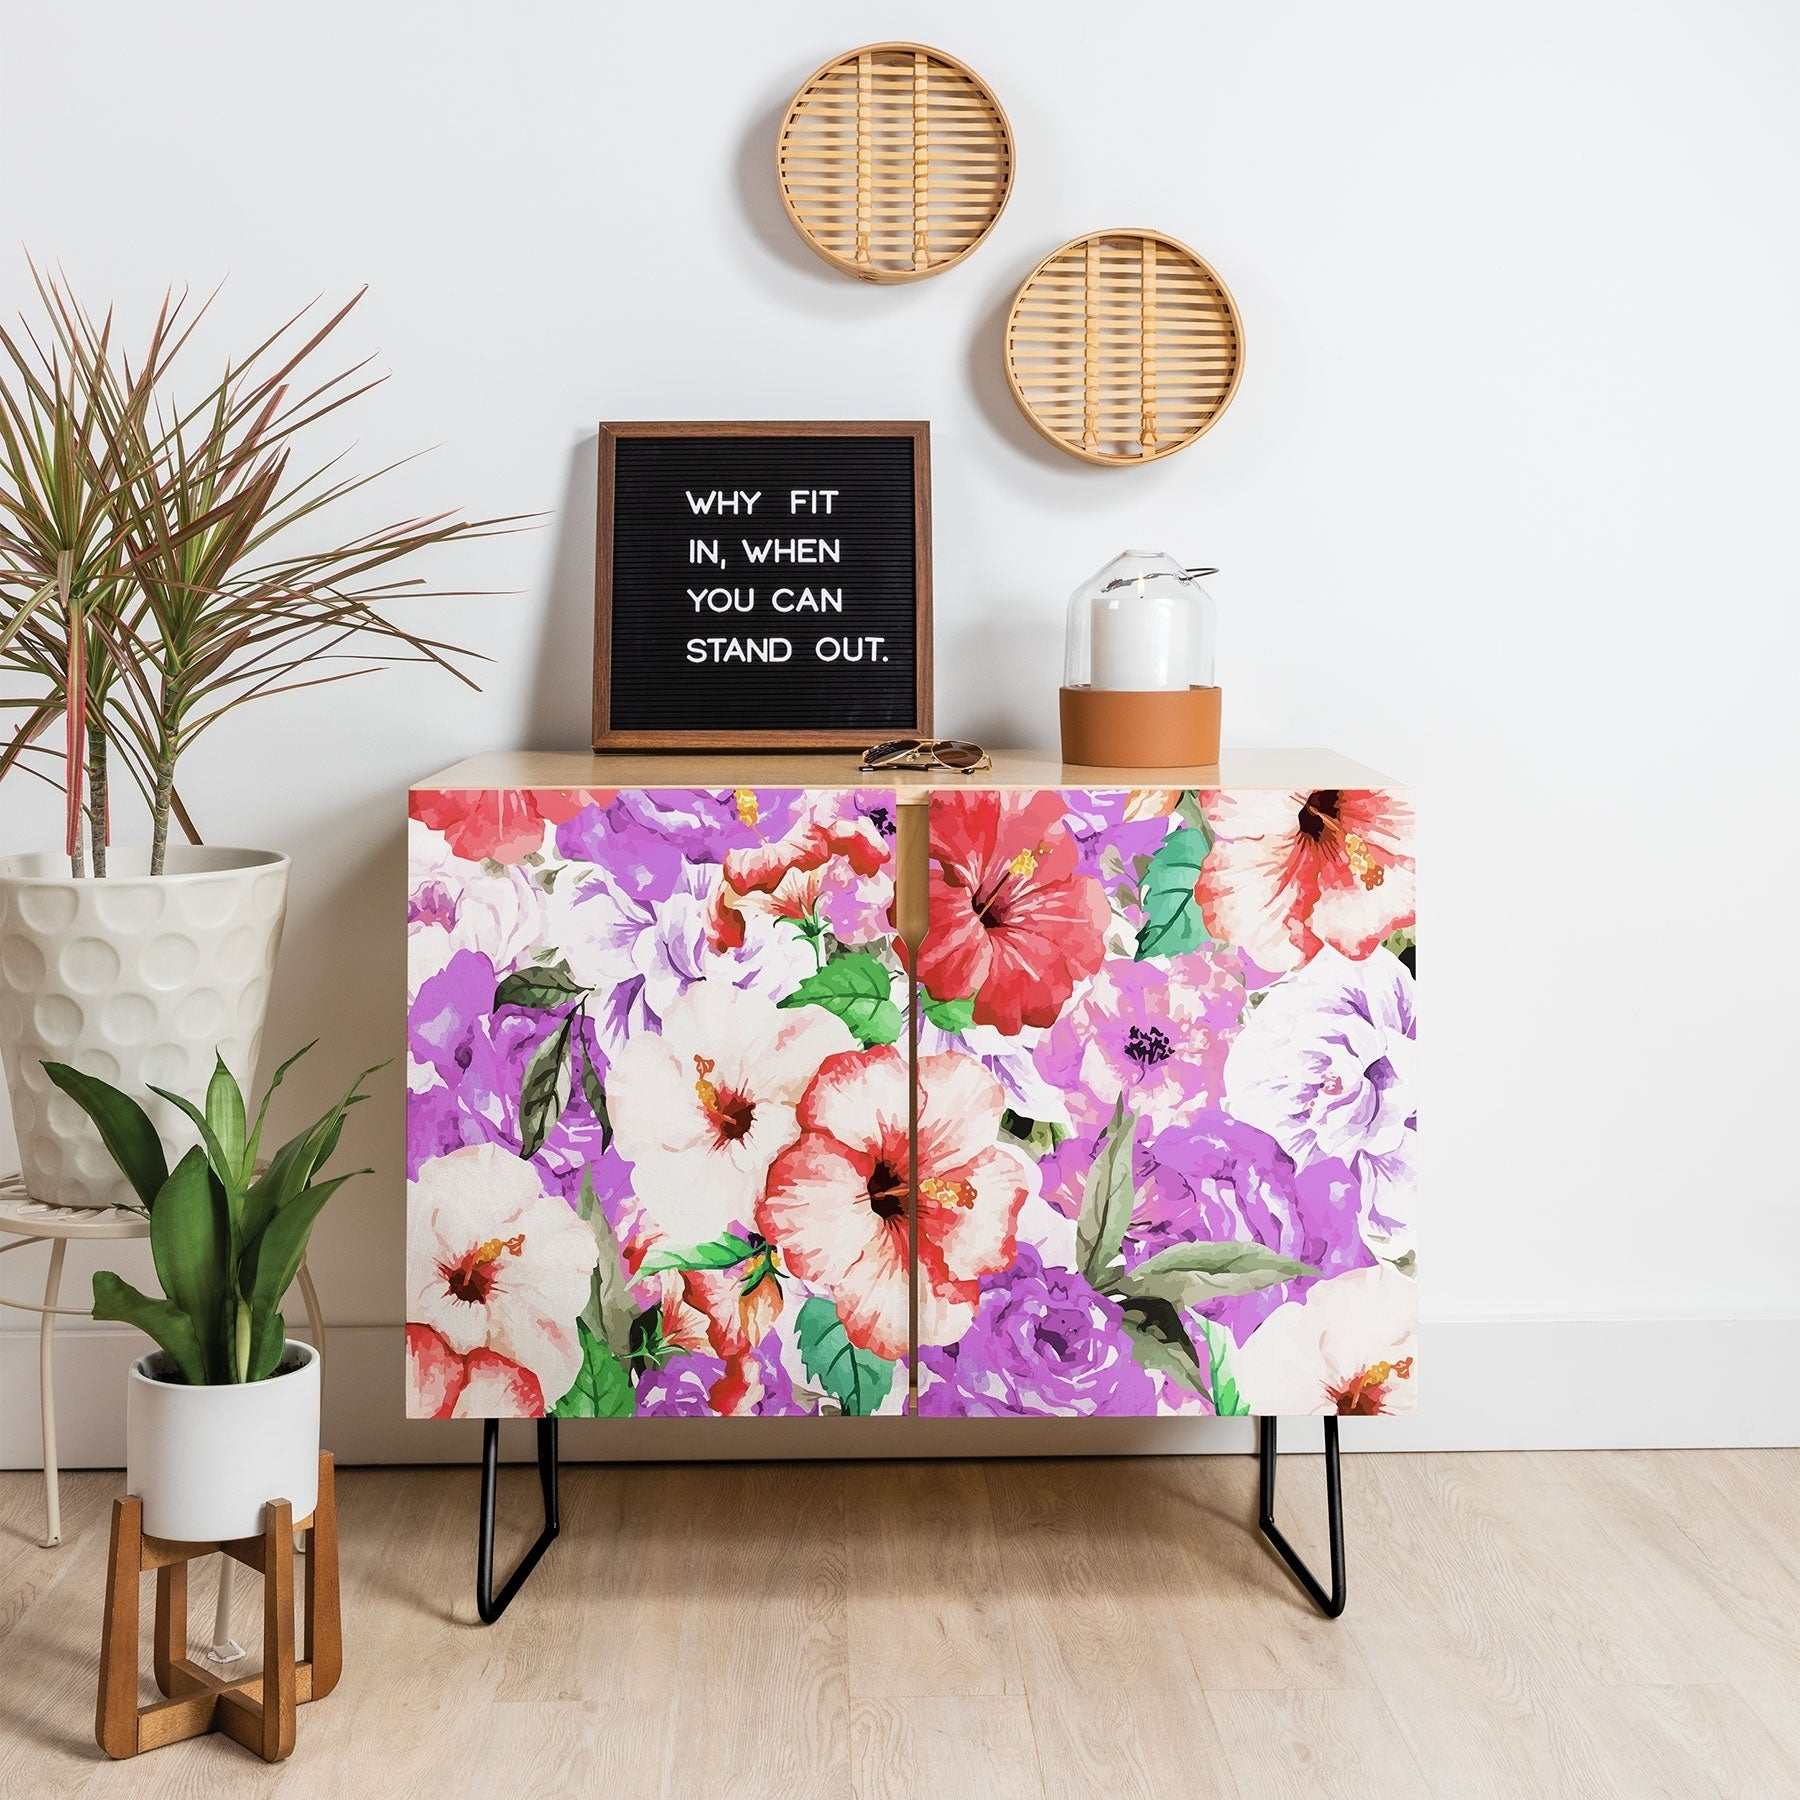 Deny Designs Purple Floral Credenza (Birch Or Walnut, 2 Leg Options) Intended For Purple Floral Credenzas (Gallery 1 of 30)